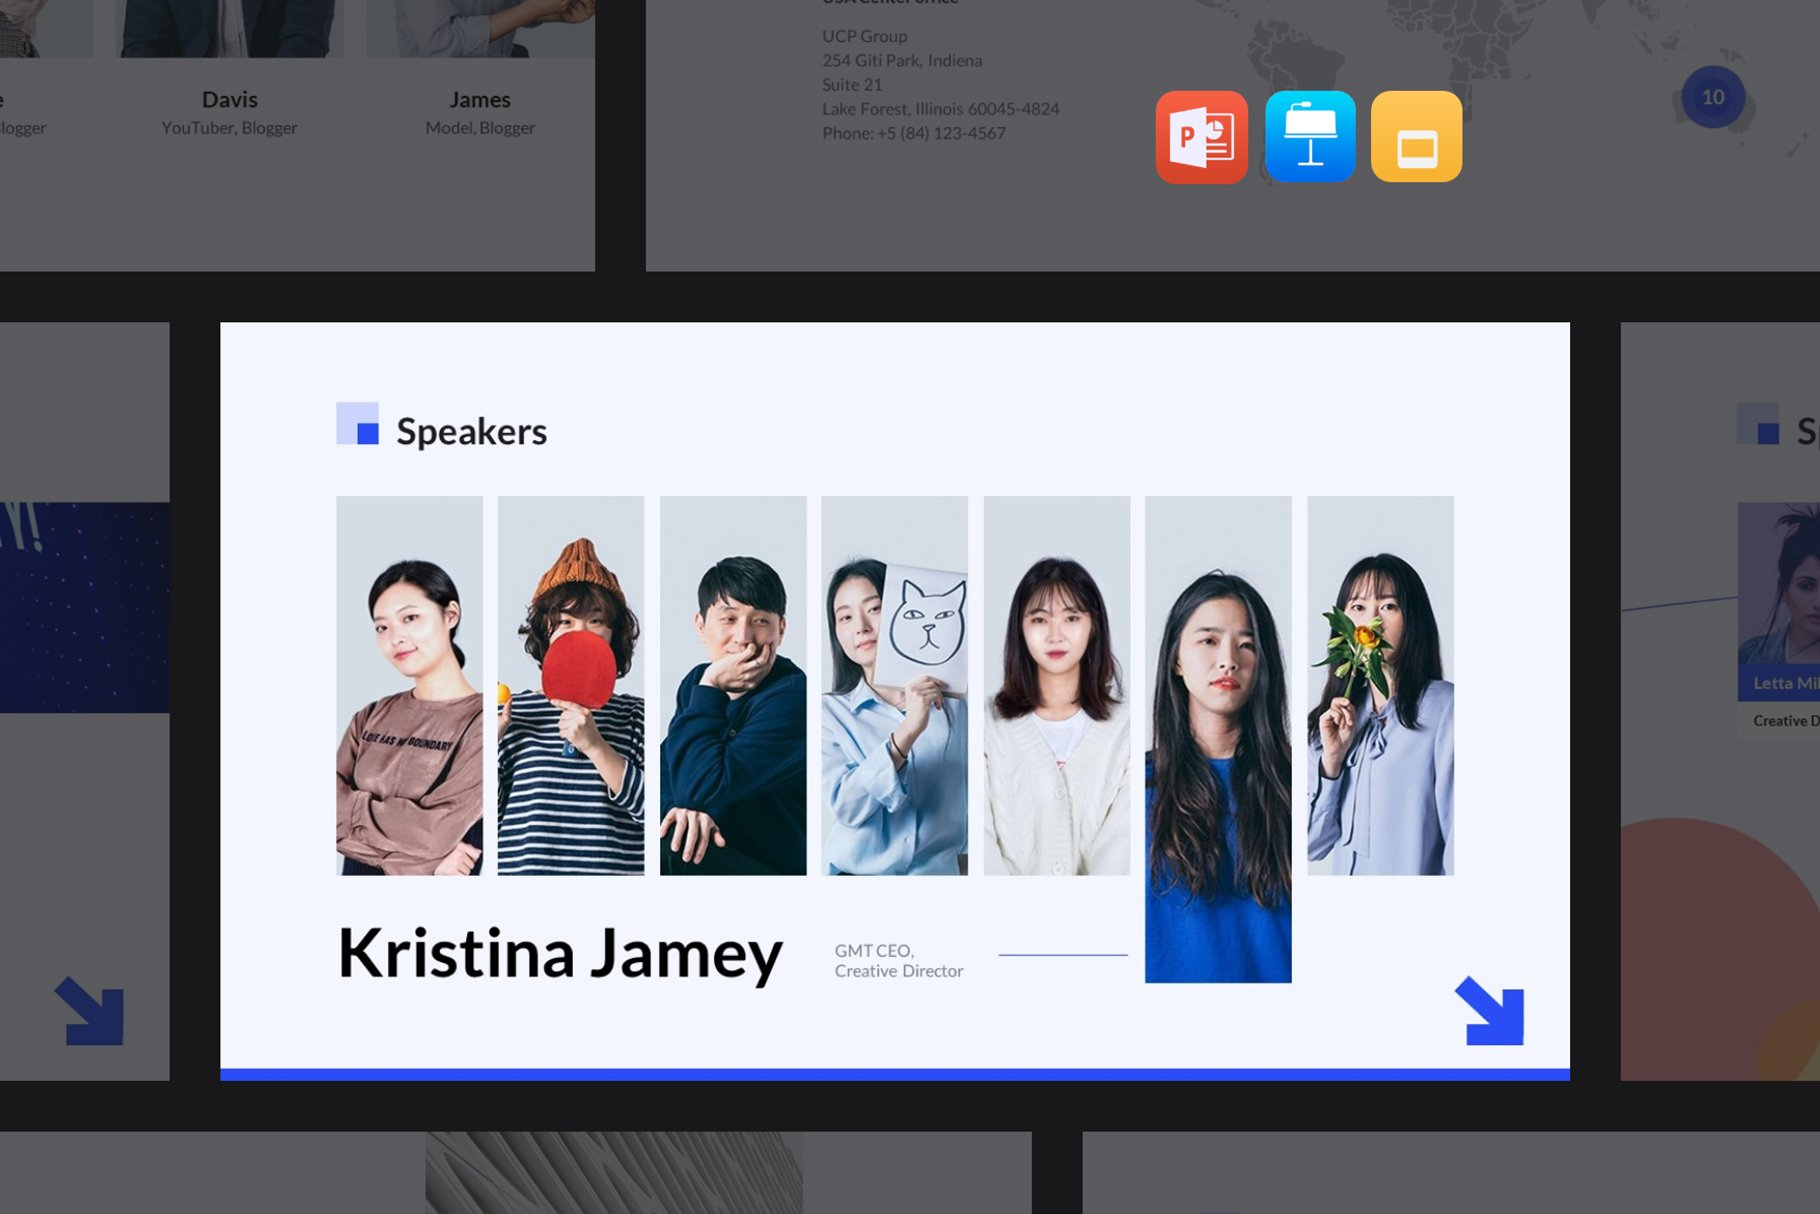 In an interactive format, you showcase the speakers.